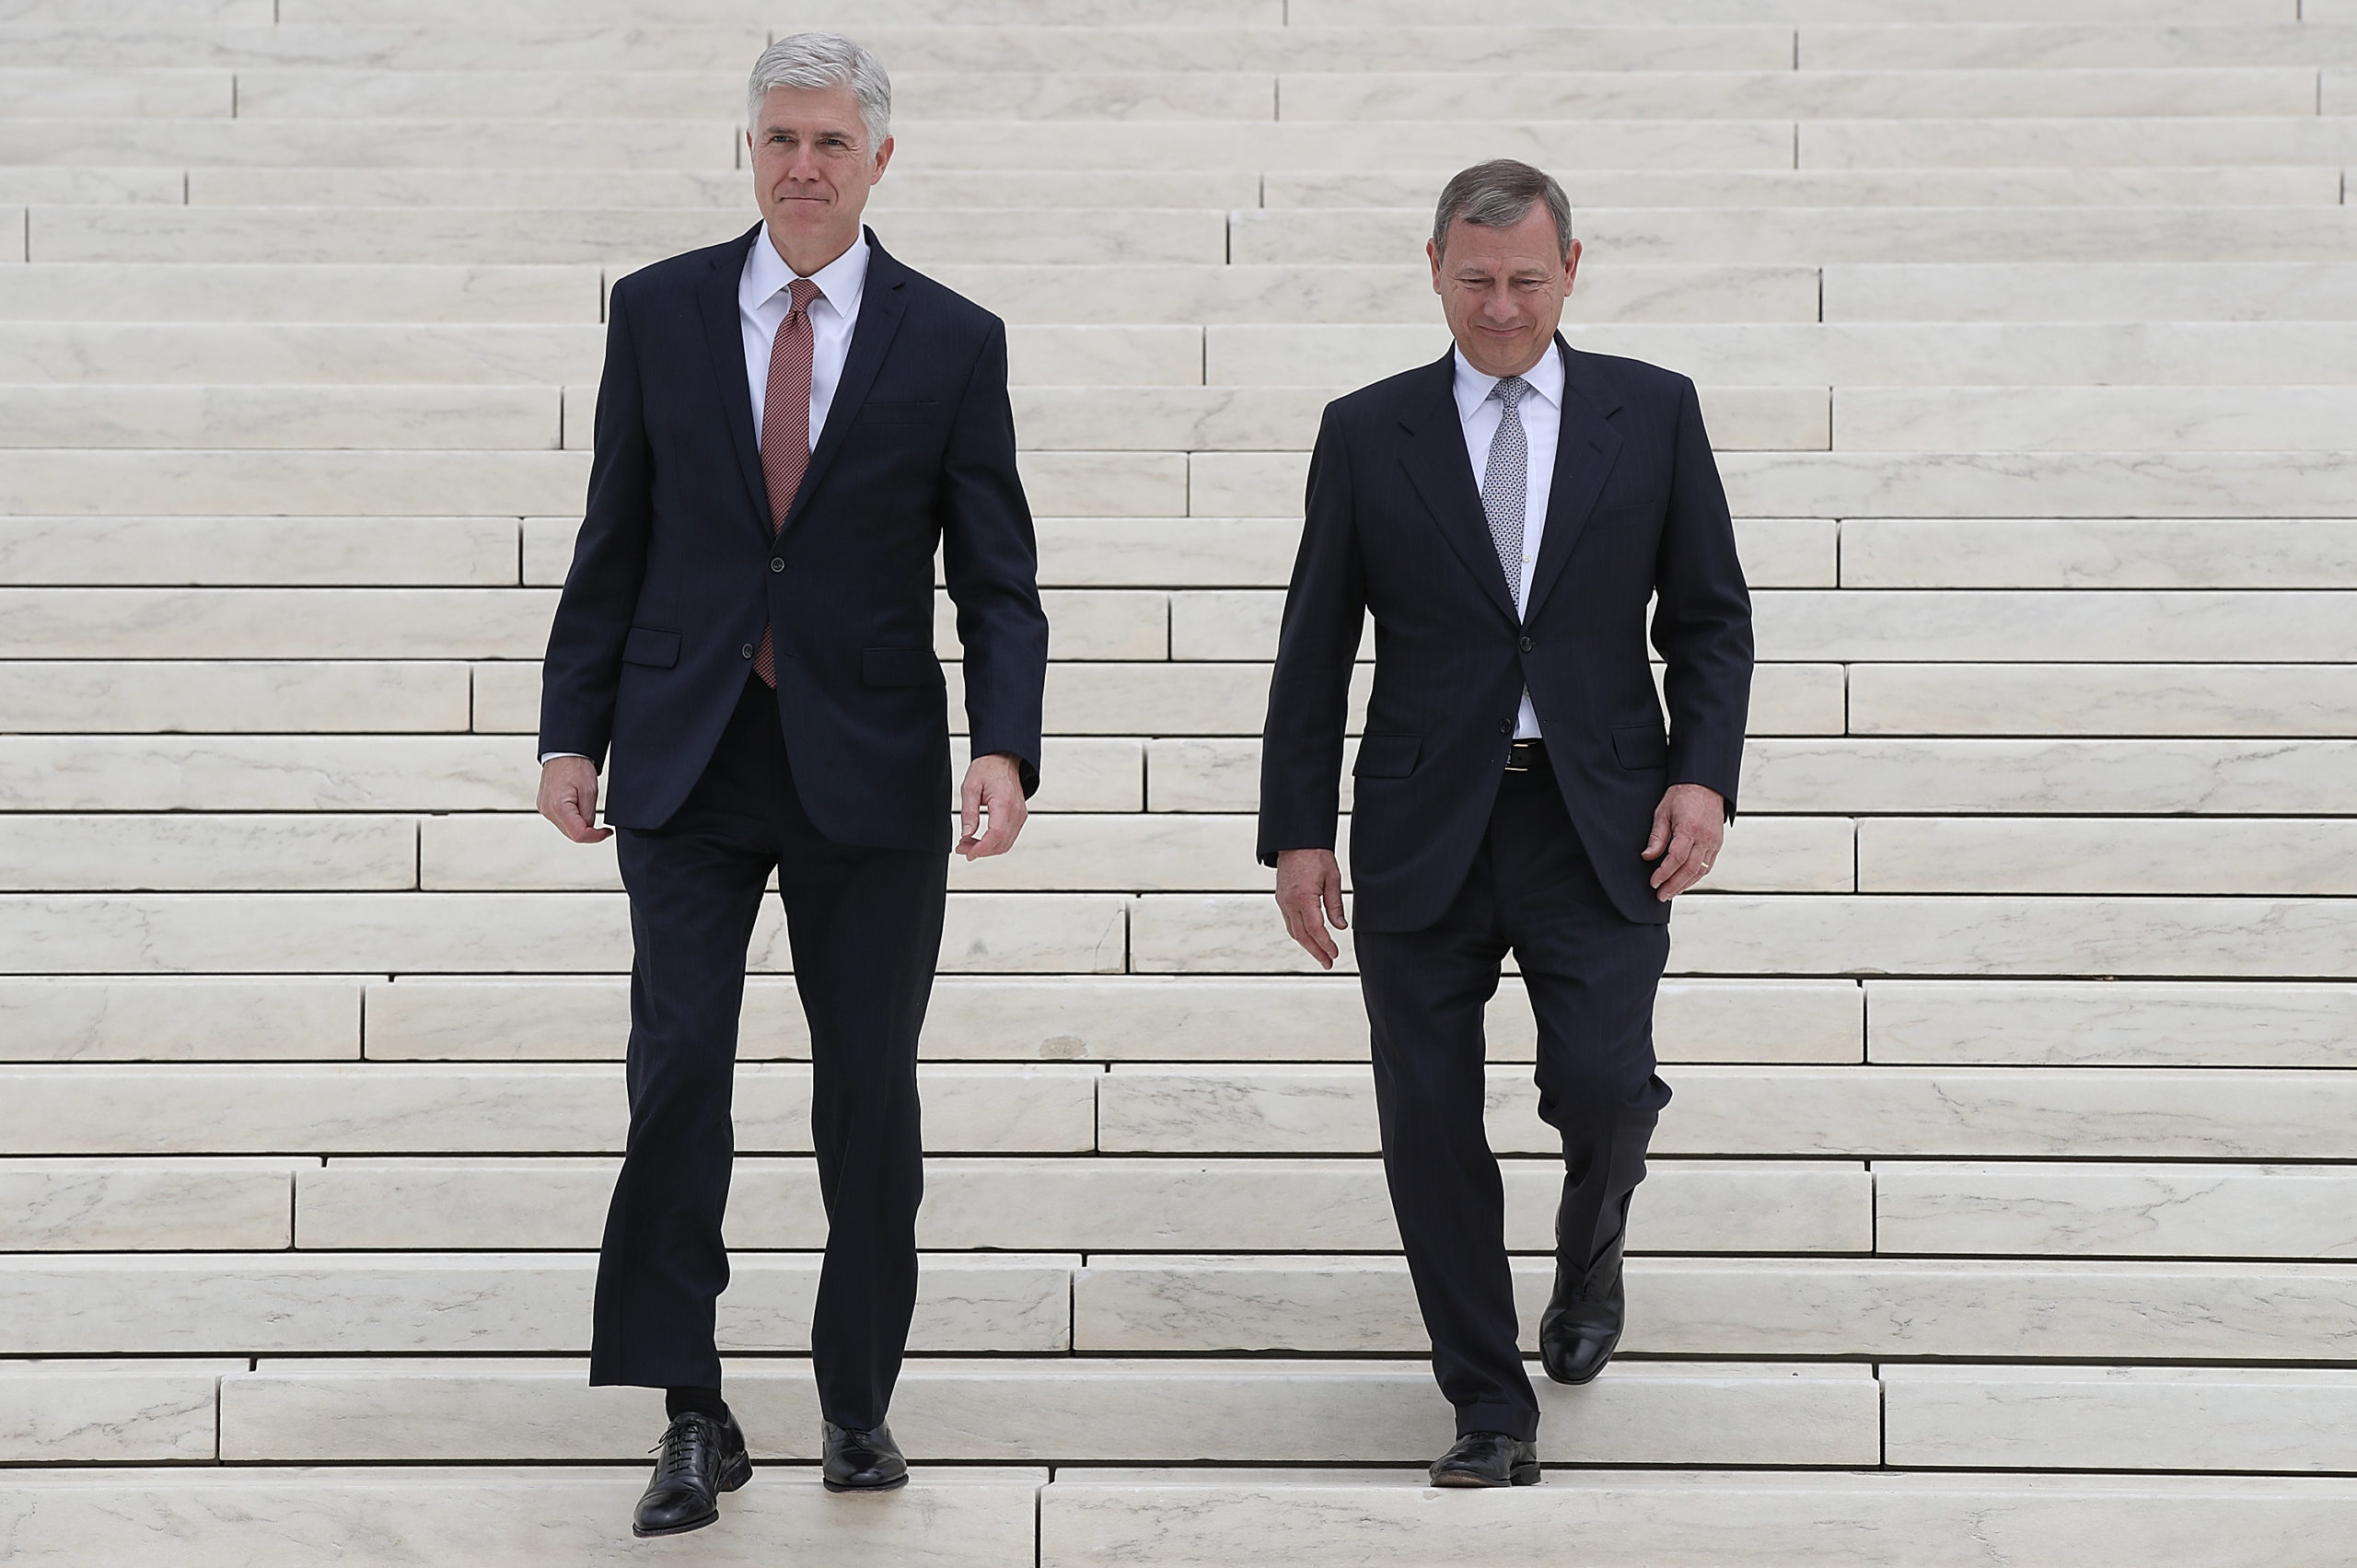 WASHINGTON, DC - JUNE 15: Supreme Court Justice Neil Gorsuch (L) walks down the steps of the Supreme Court with Chief Justice John Roberts (R) following his official investiture ceremony June 15, 2017 in Washington, DC. Gorsuch has been an active member of the court since his confirmation though the official investiture ceremony was held today. (Photo by Win McNamee/Getty Images)